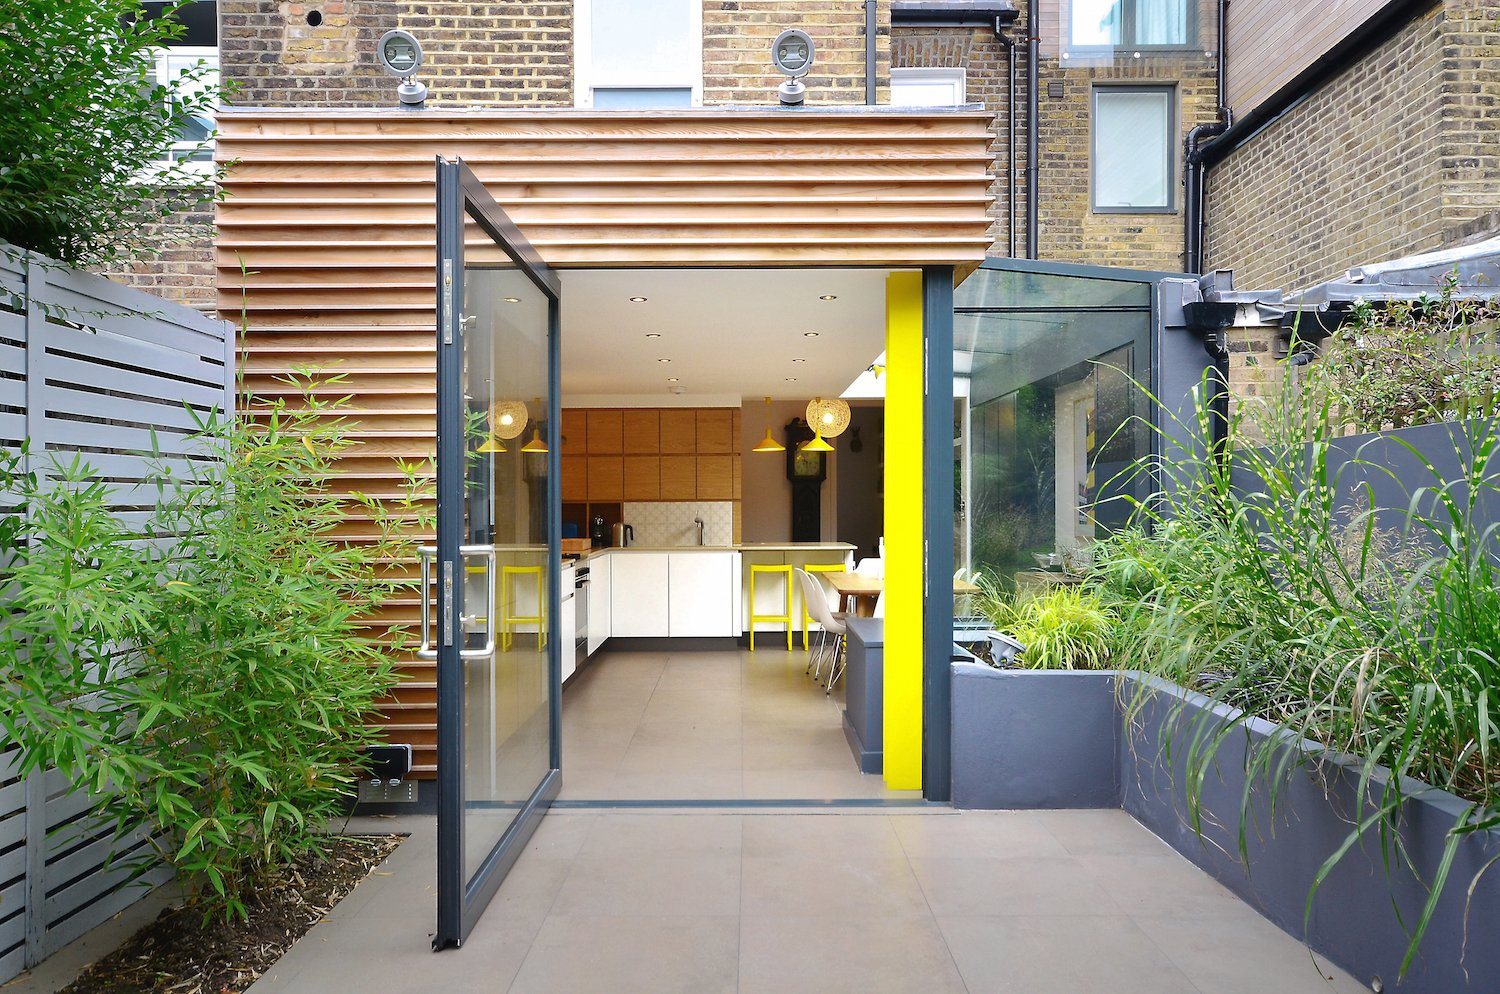 The kitchen's structural pillar was painted a vibrant yellow, a shade that's echoed in the furnishings.